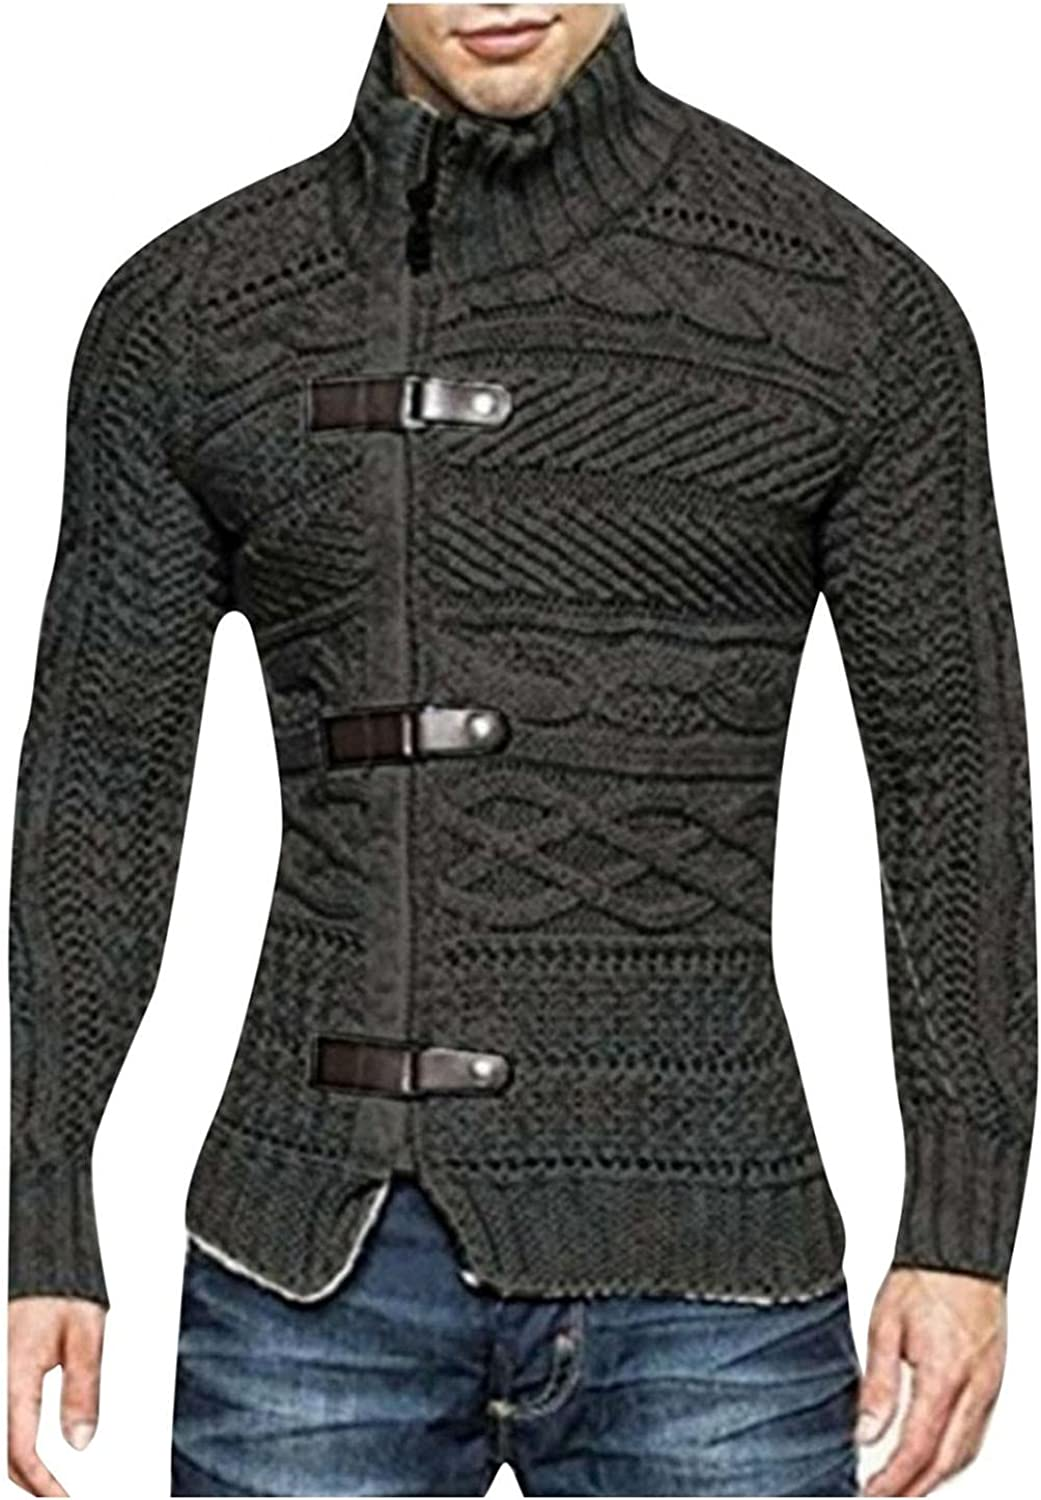 Men's Turtleneck Sweaters Cable Knitted Sweatshirts Pullover Thicken Thermal Button Down Tops Basic Designed Blouse